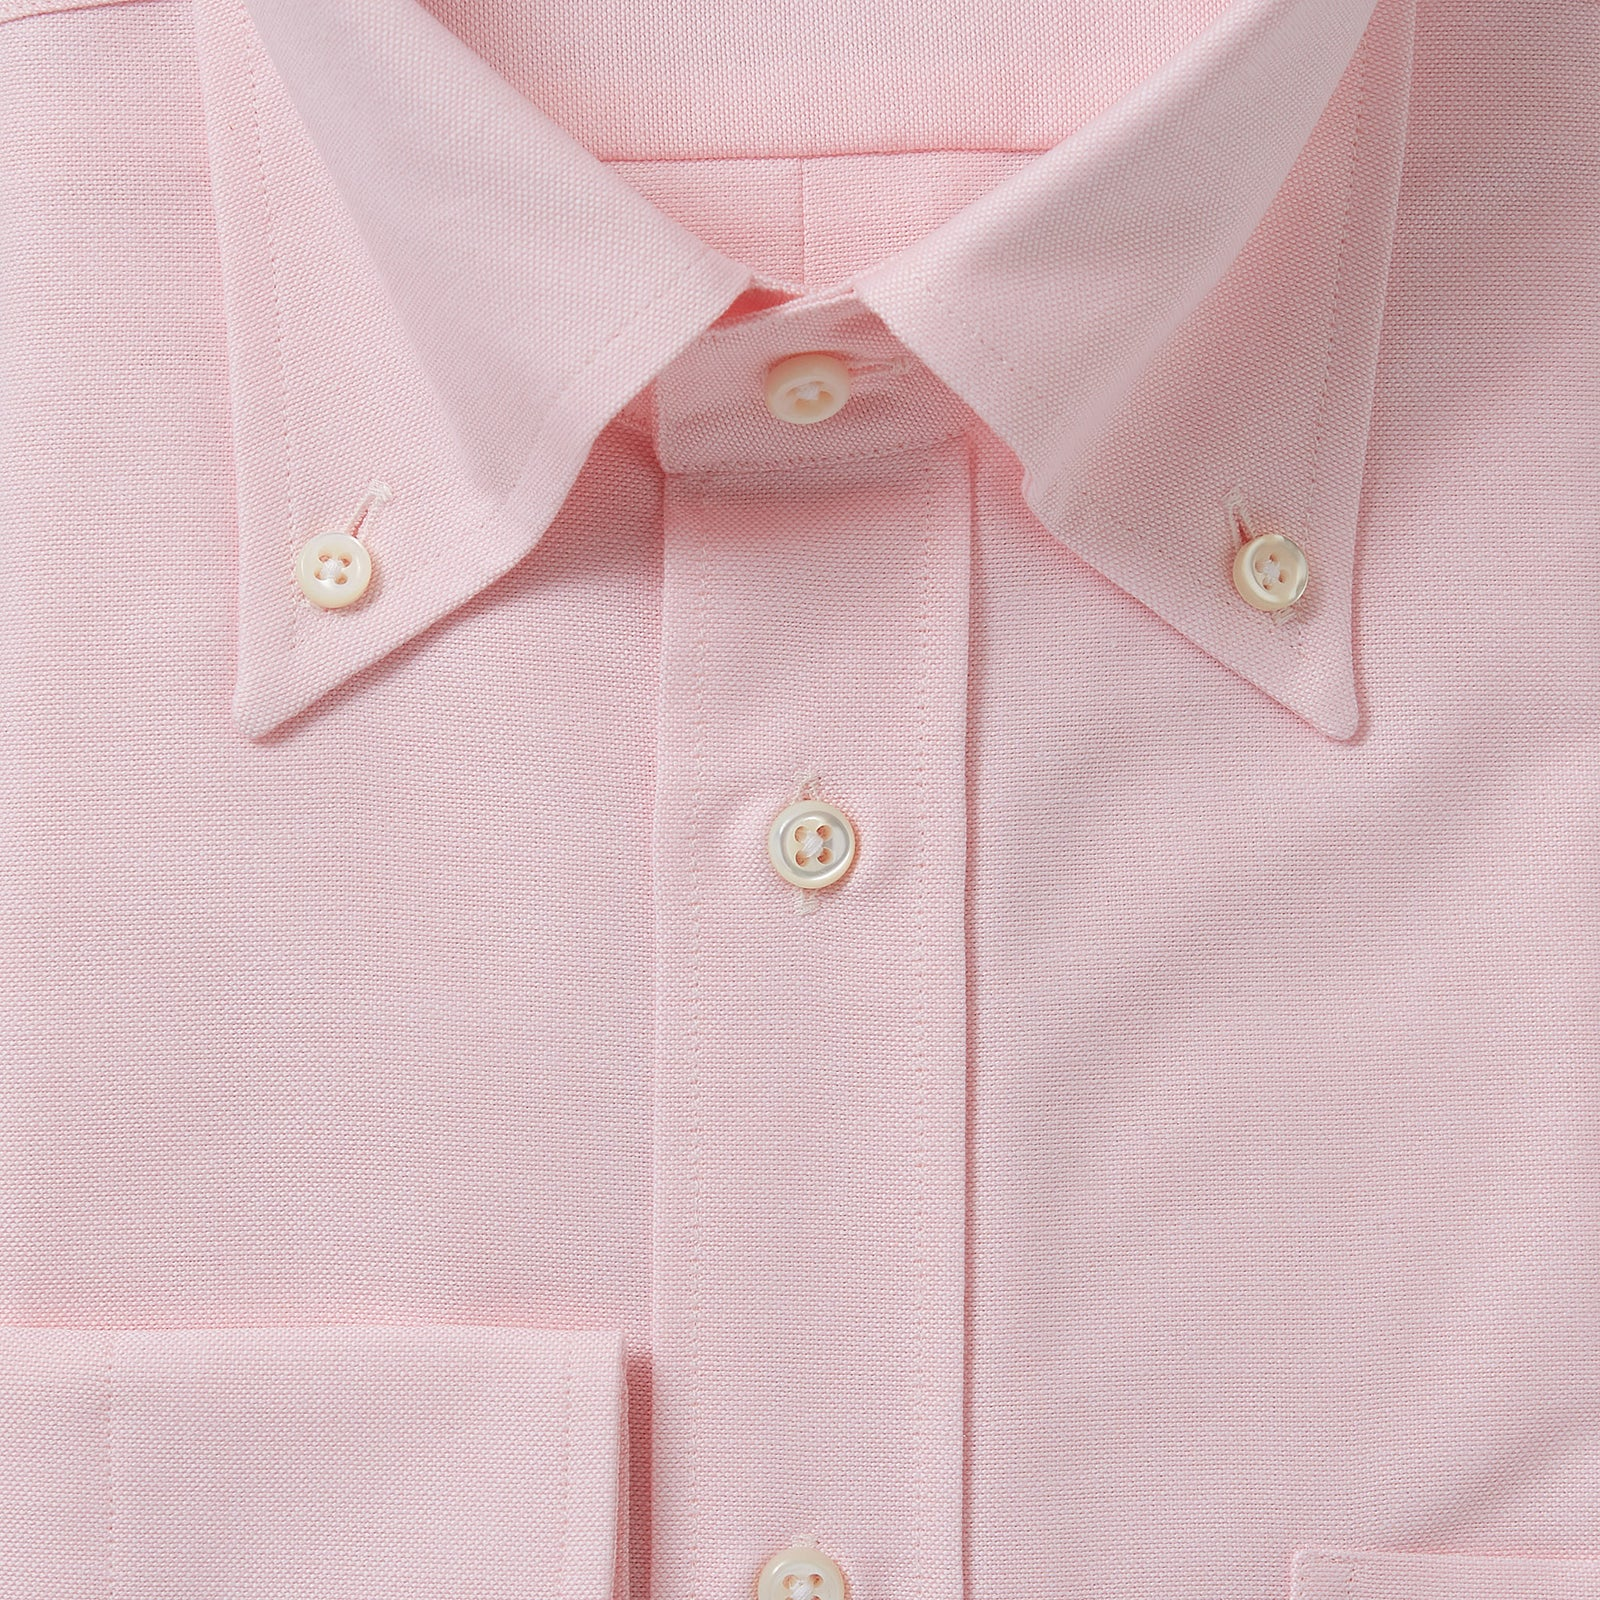 OCBD Shirt Pink Oxford